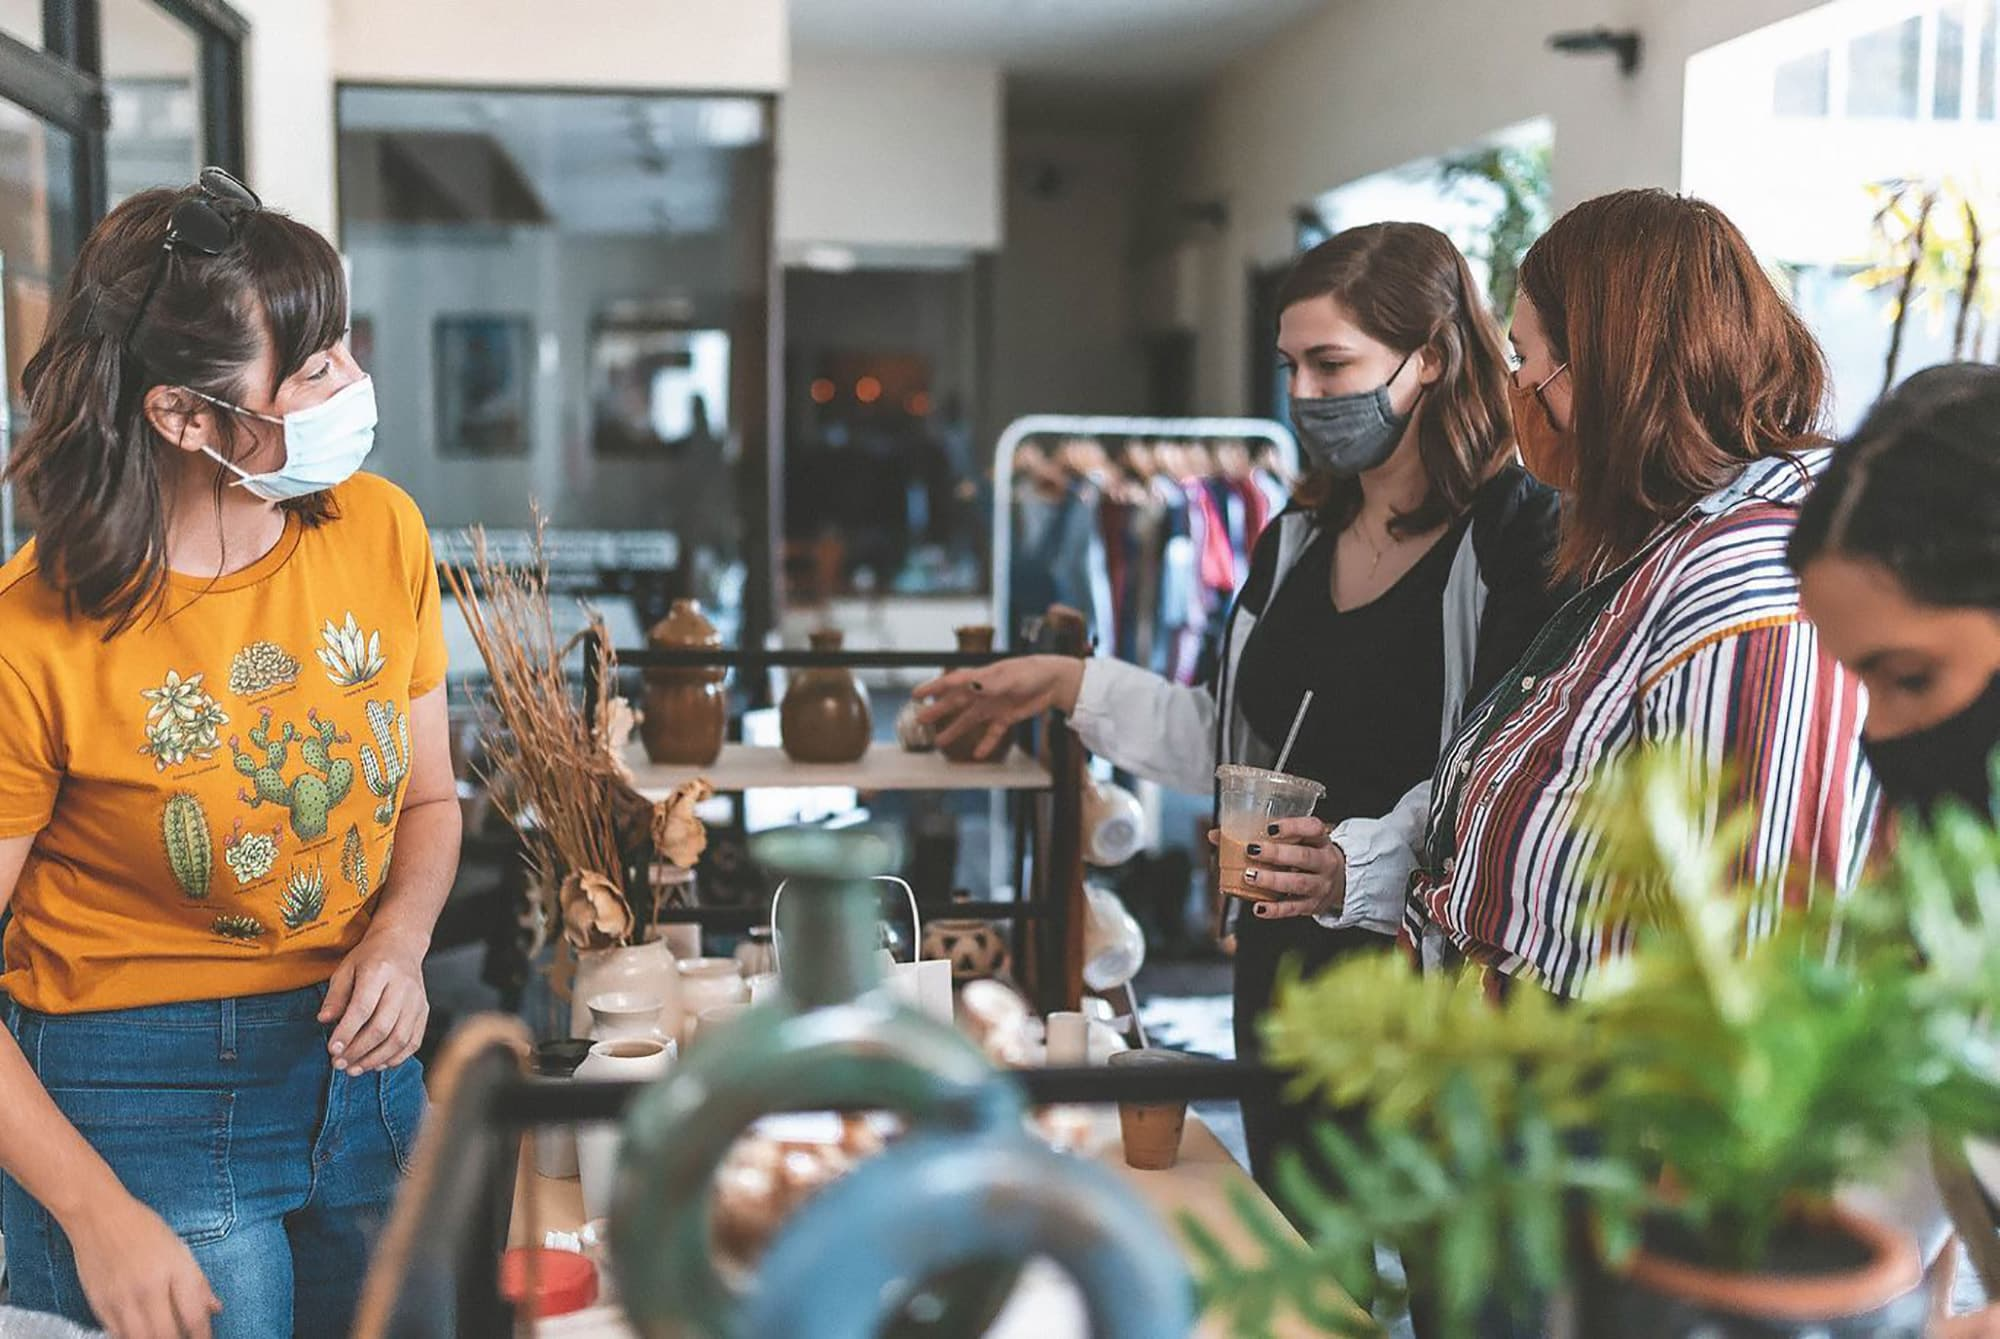 Buena Market, a weekly pop up market for local artisans in Lakeland, FL